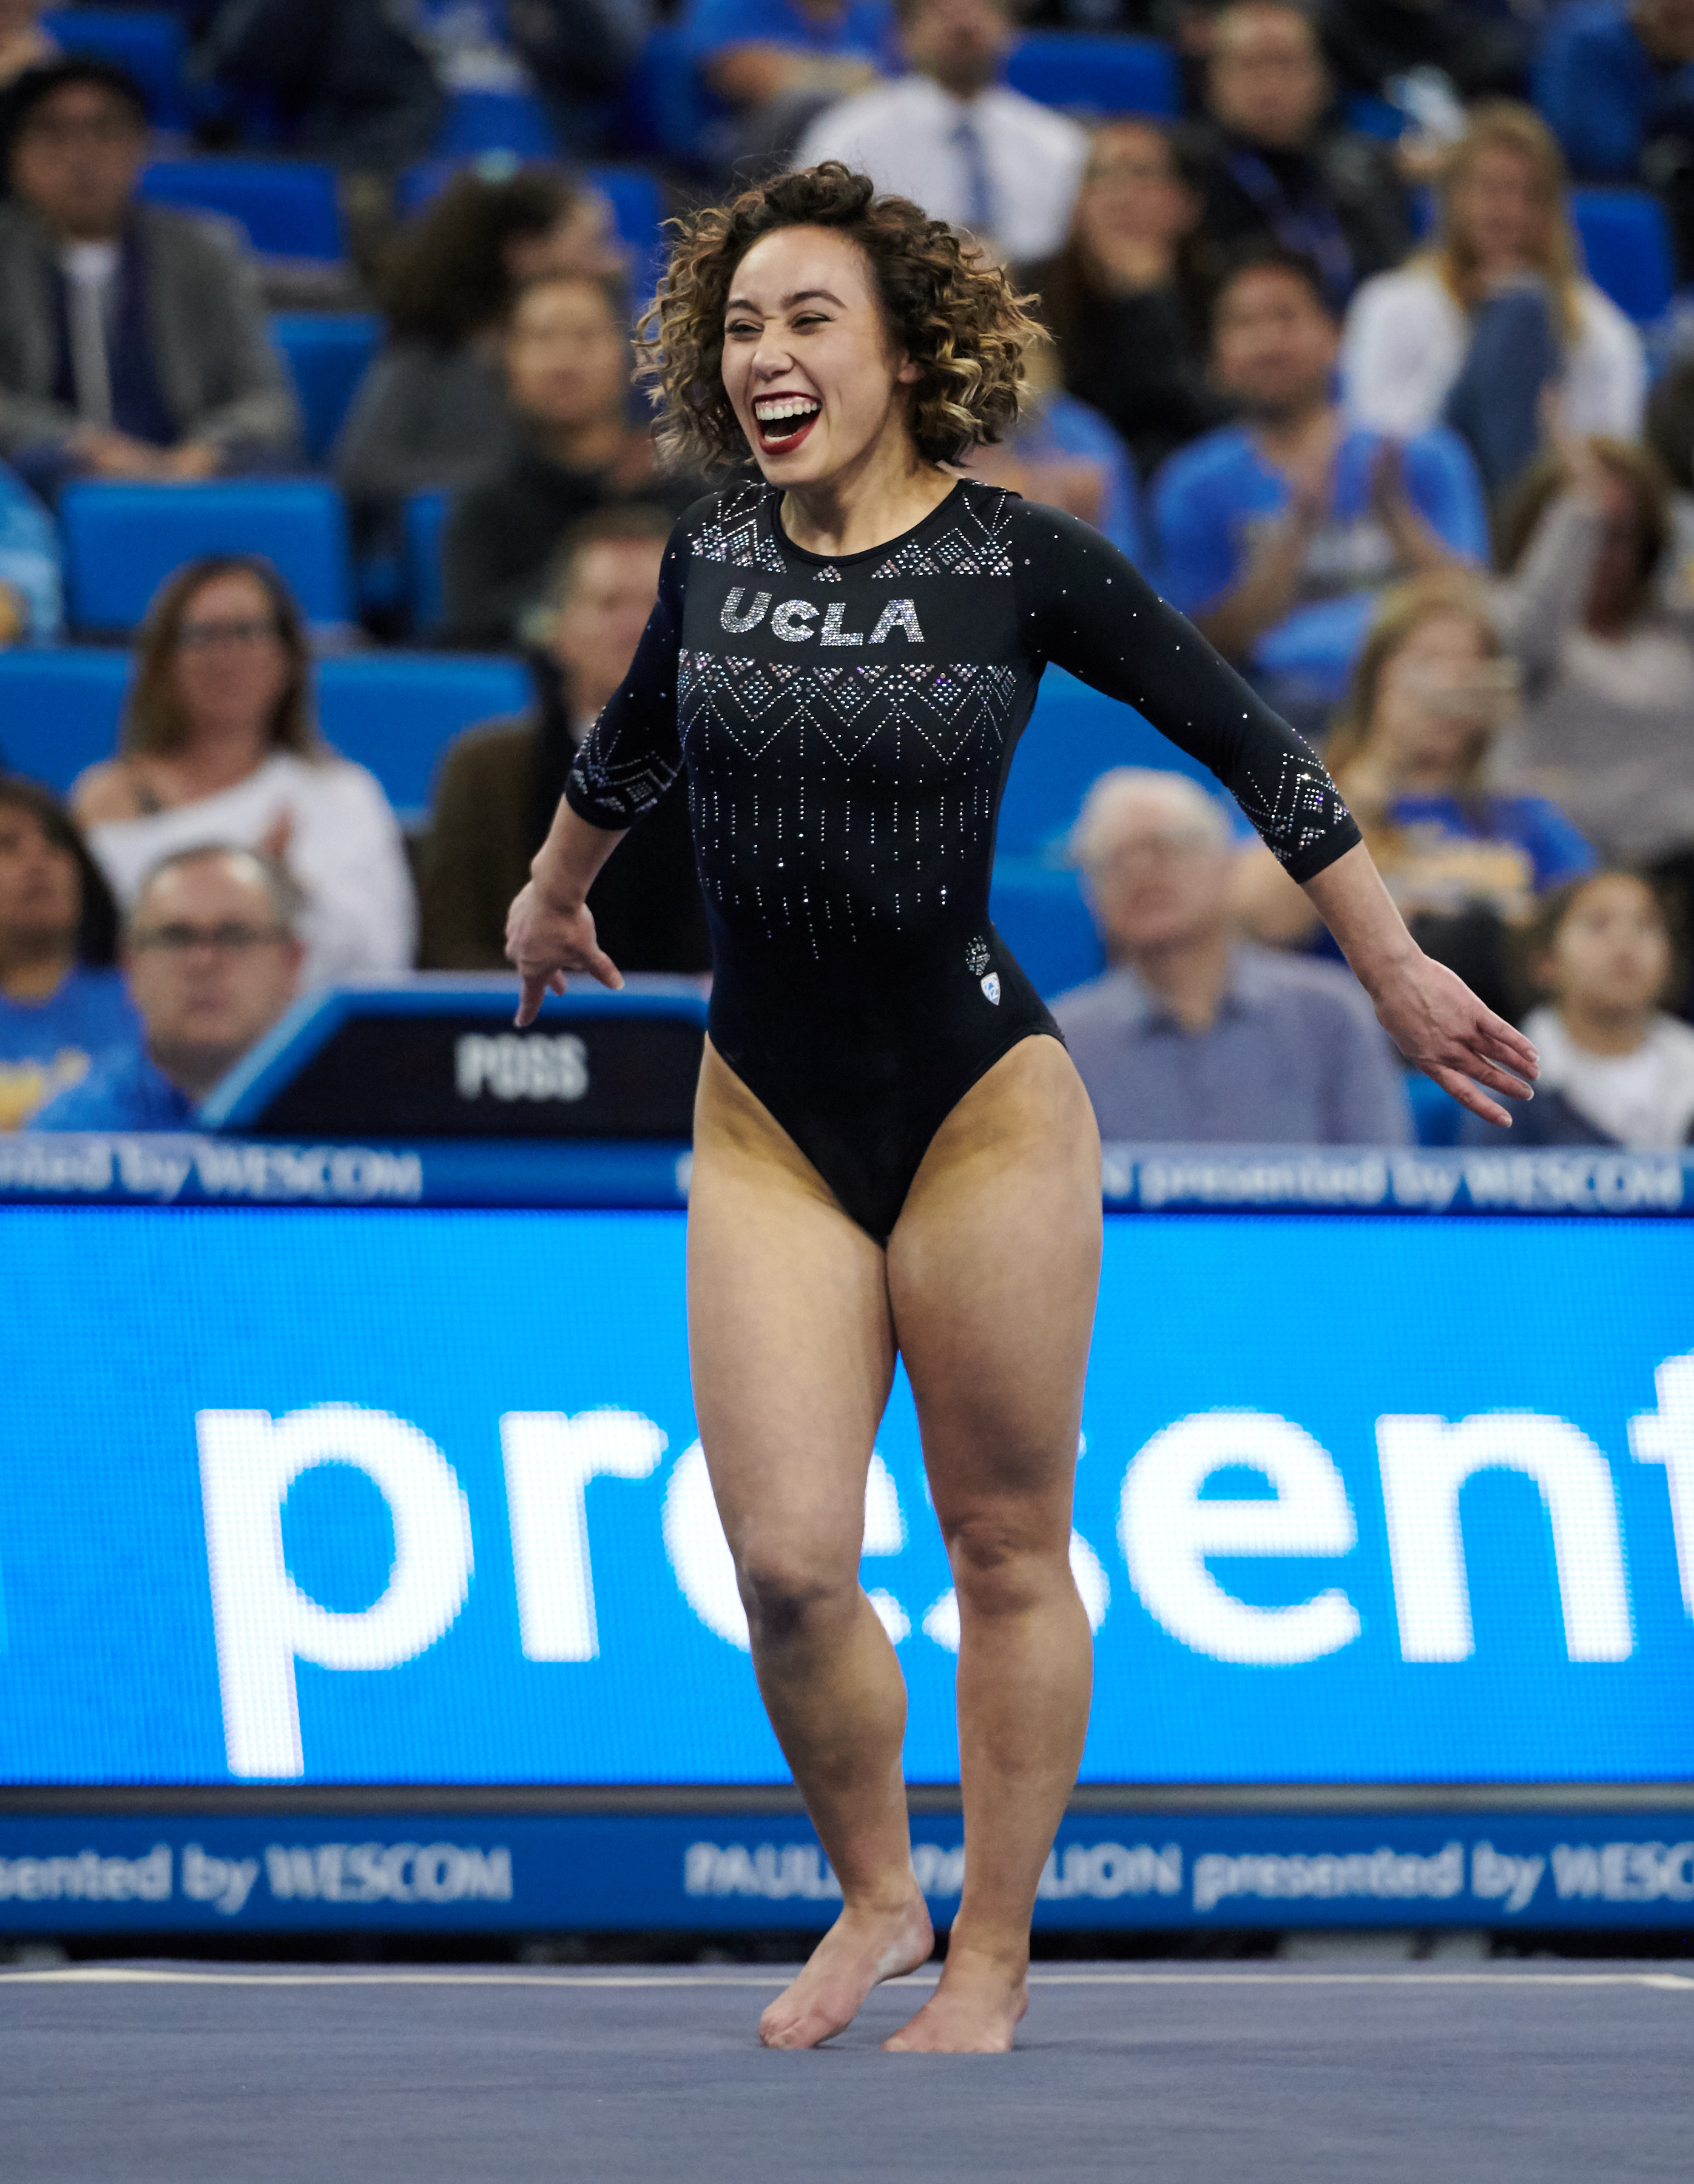 UCLA Athletics - 2019 UCLA Women's Gymnastics versus the University of Nebraska Cornhuskers. Pauley Pavilion, UCLA, Los Angeles, CA. January 4th, 2019 Copyright Don Liebig/ASUCLA 190104_GYM_1917.NEF